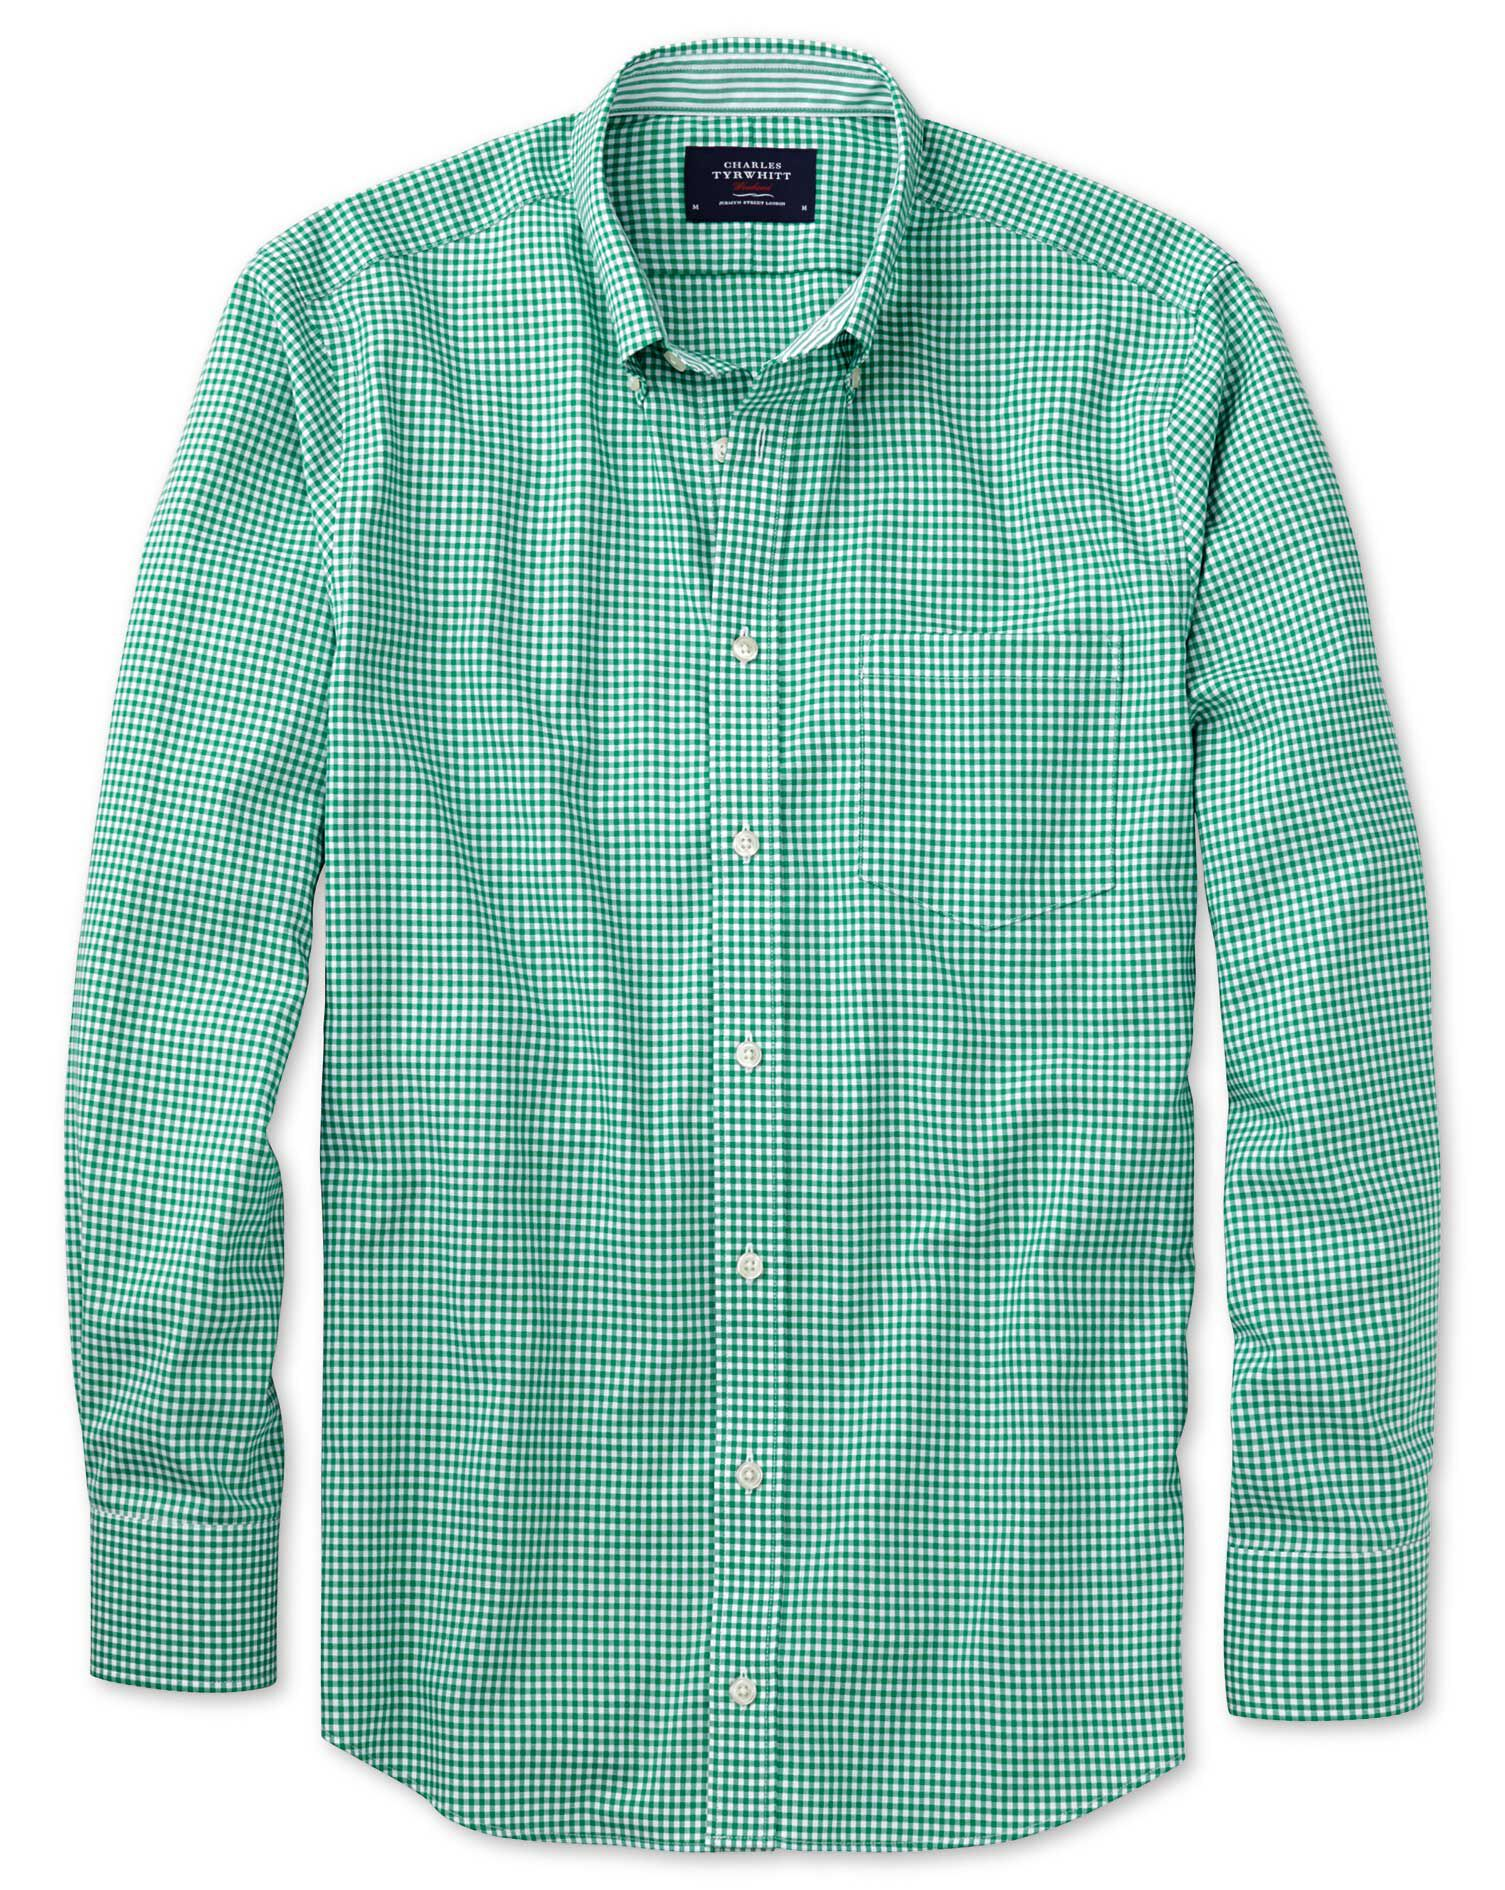 Classic Fit Non-Iron Oxford Gingham Mid Green Cotton Shirt Single Cuff Size Medium by Charles Tyrwhi